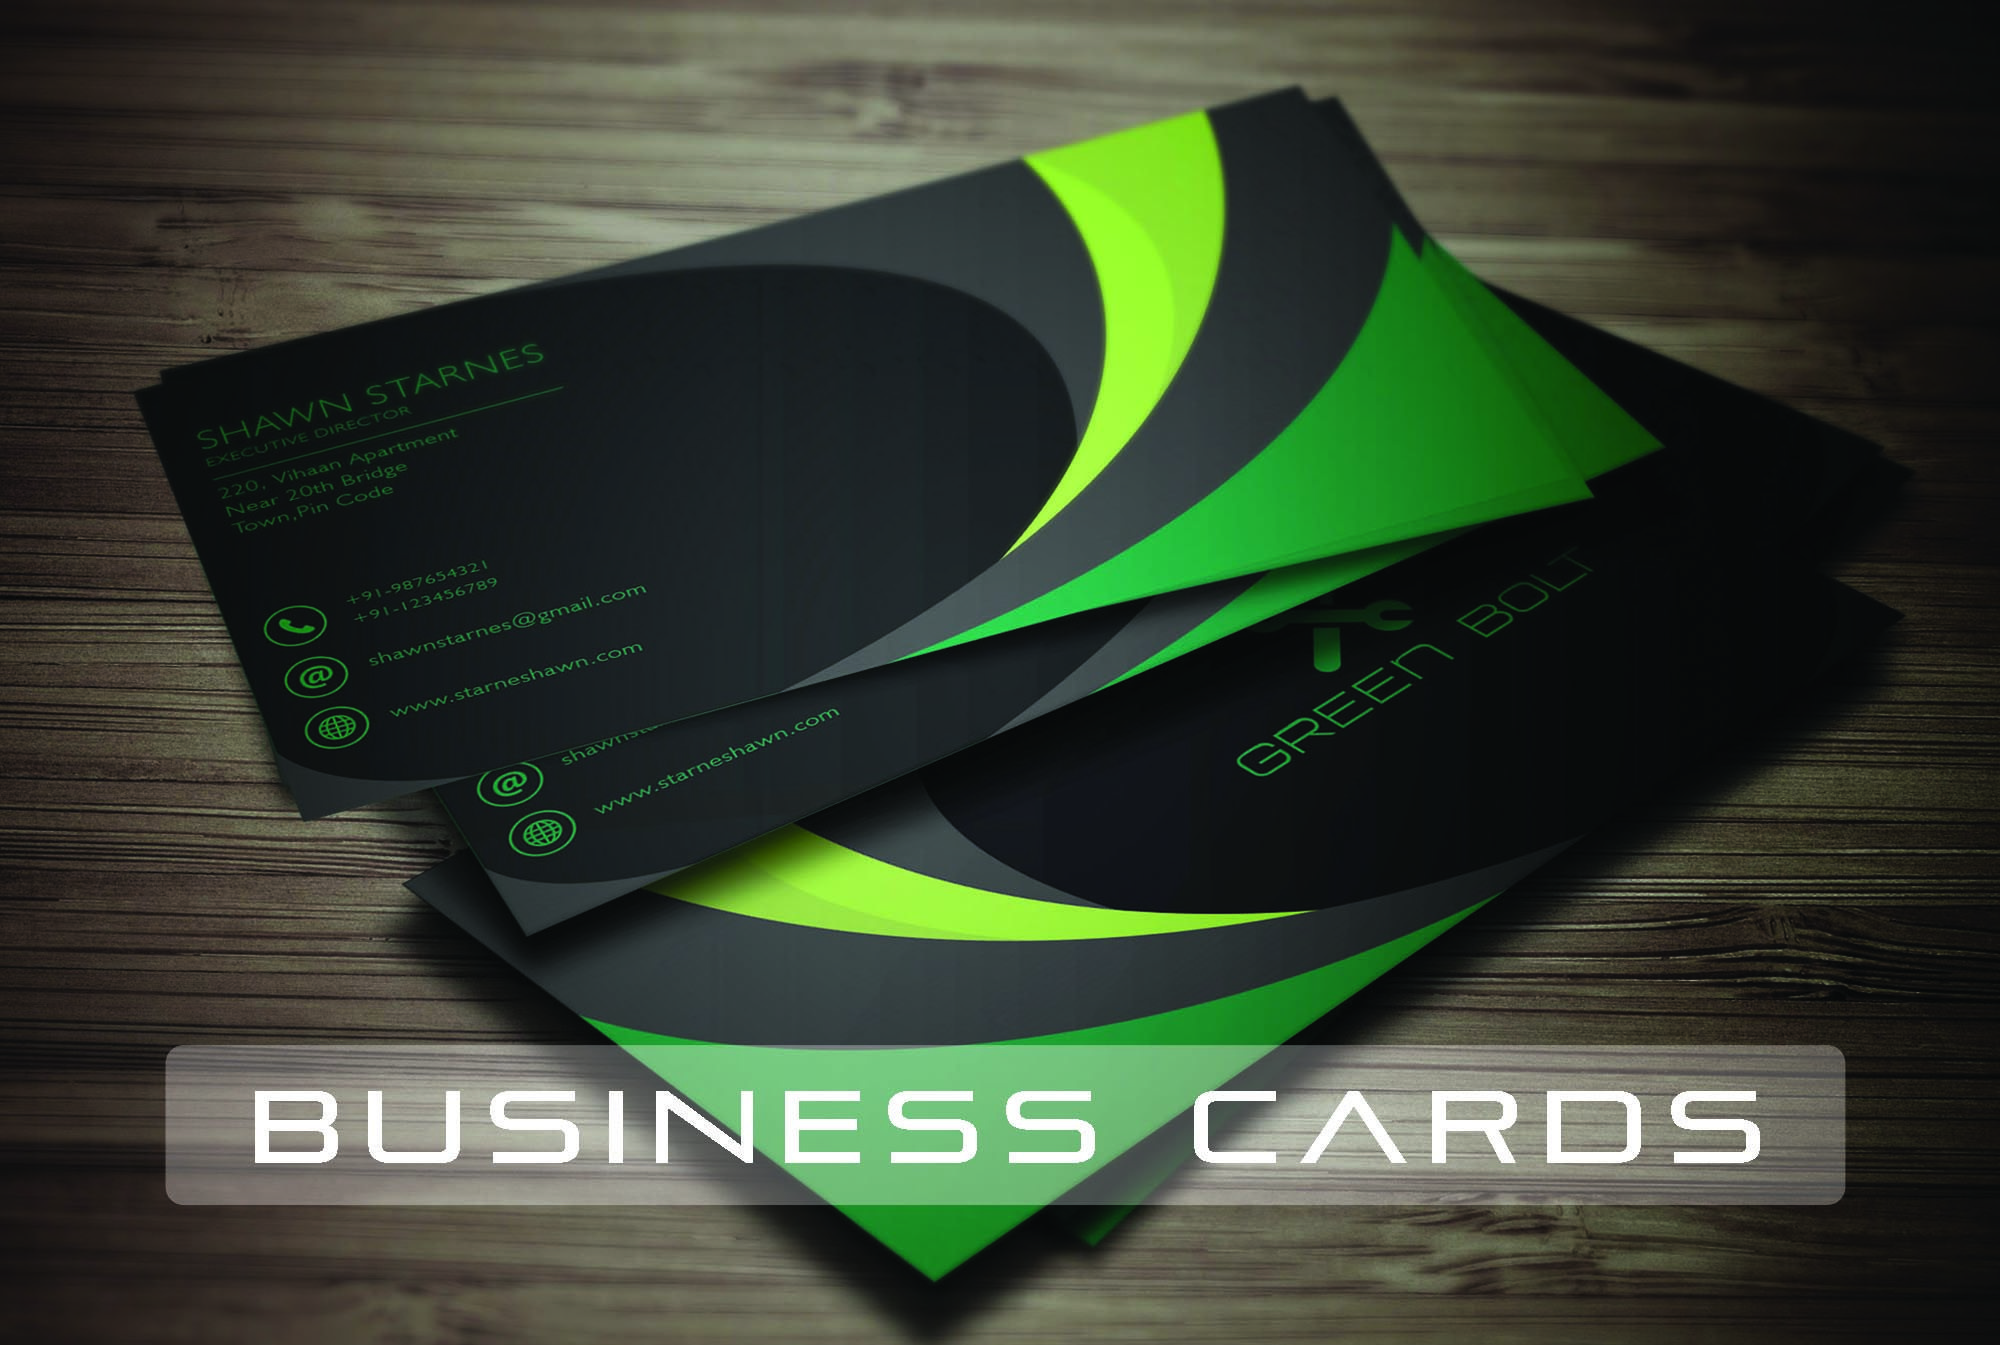 Get Everything You Need Starting At 5 Fiverr Cool Business Cards Fiverr Business Cards